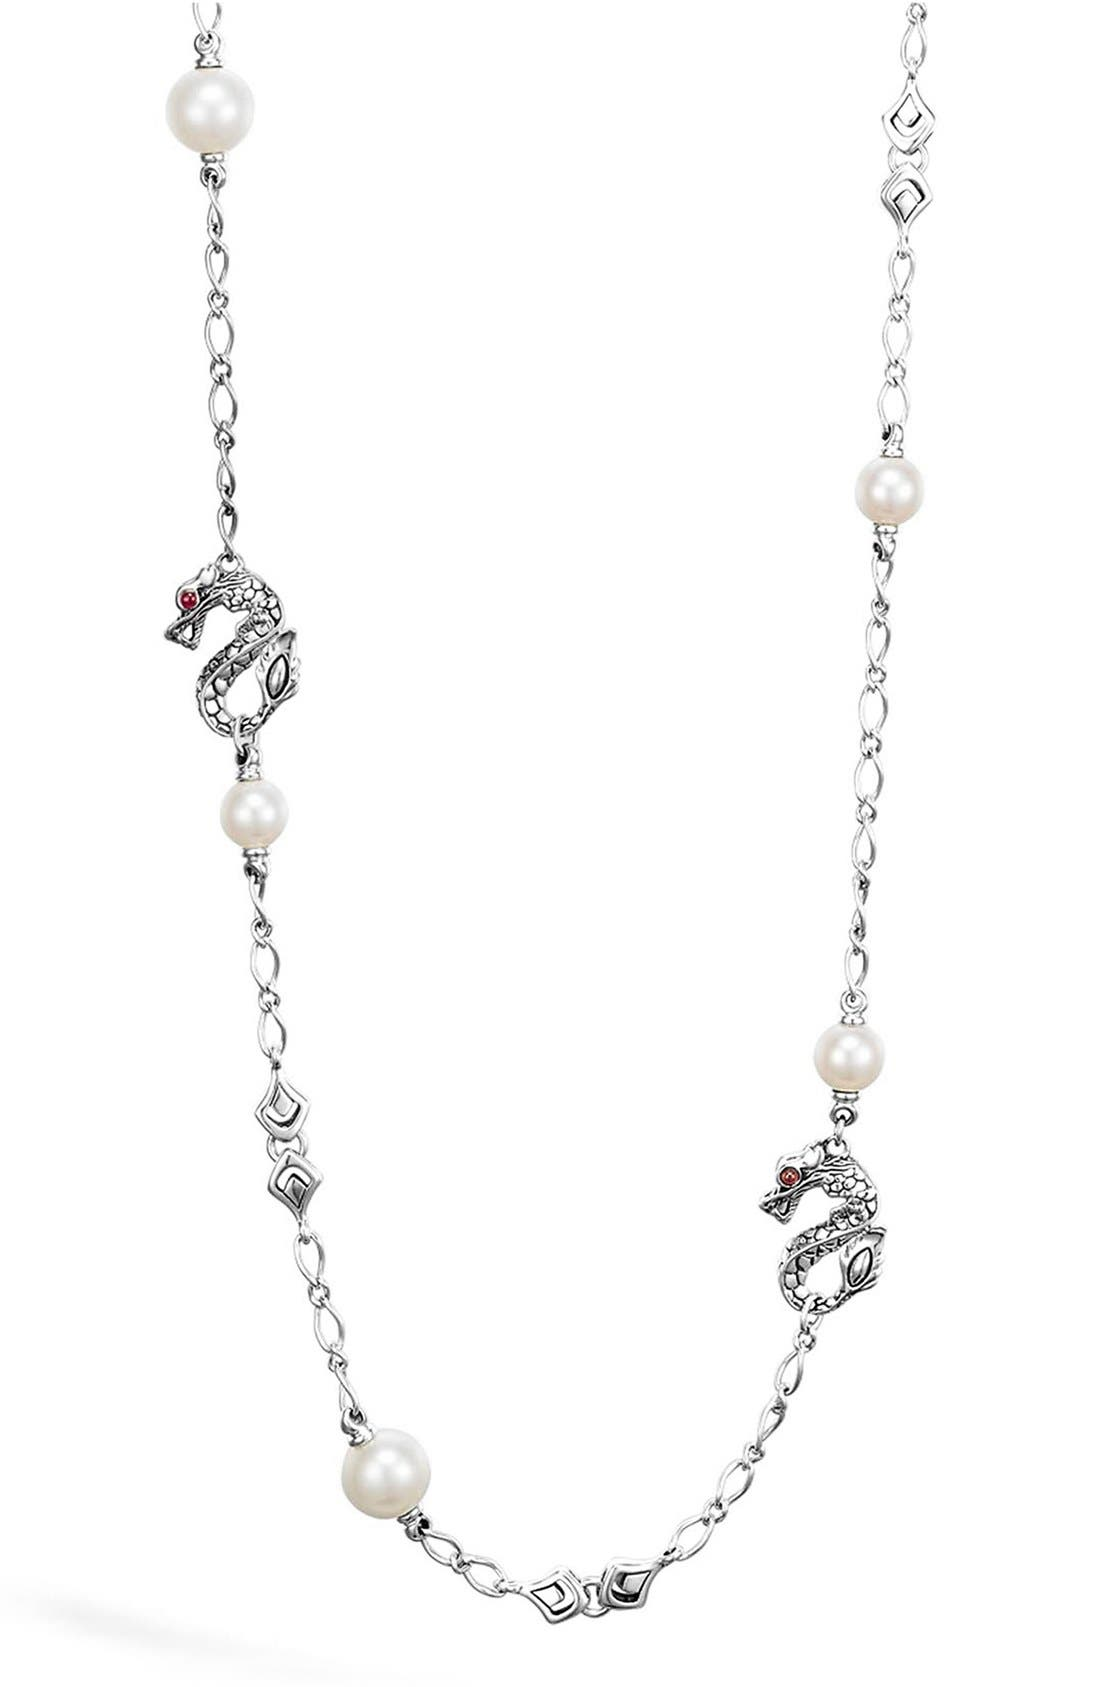 Main Image - John Hardy 'Naga' Dragon & Pearl Station Necklace